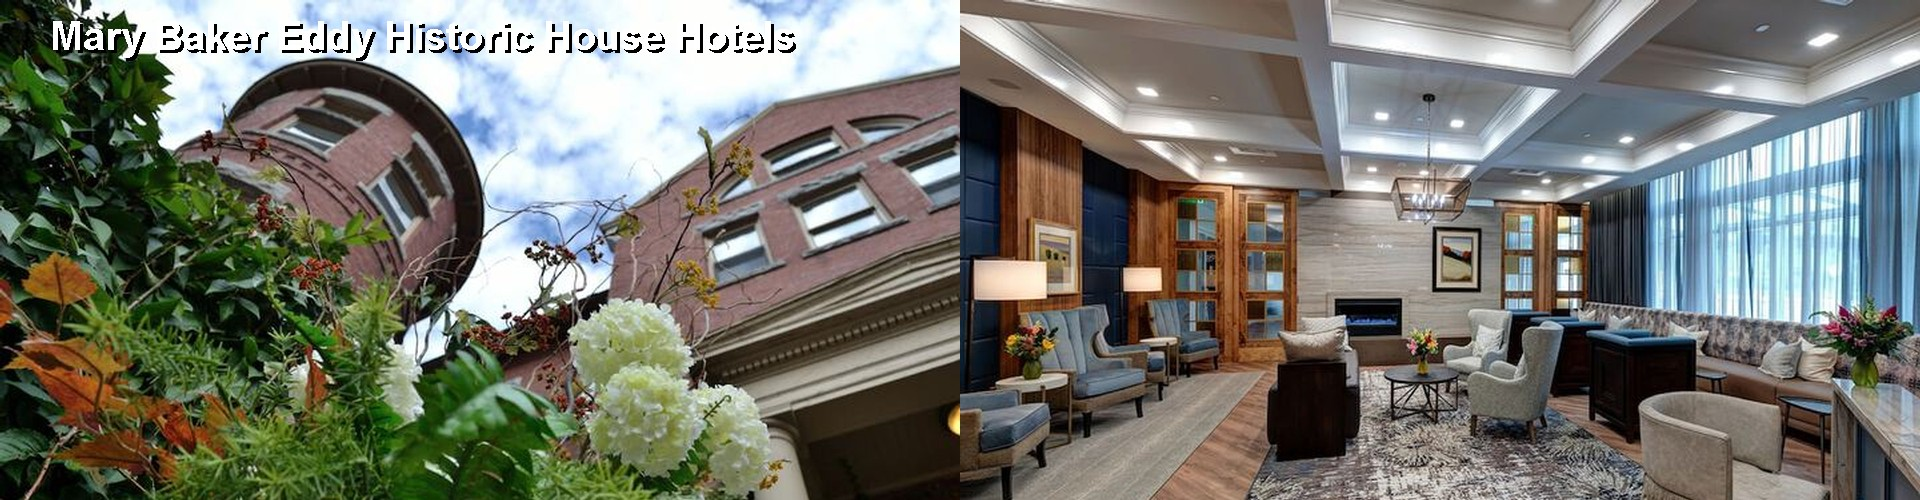 5 Best Hotels near Mary Baker Eddy Historic House